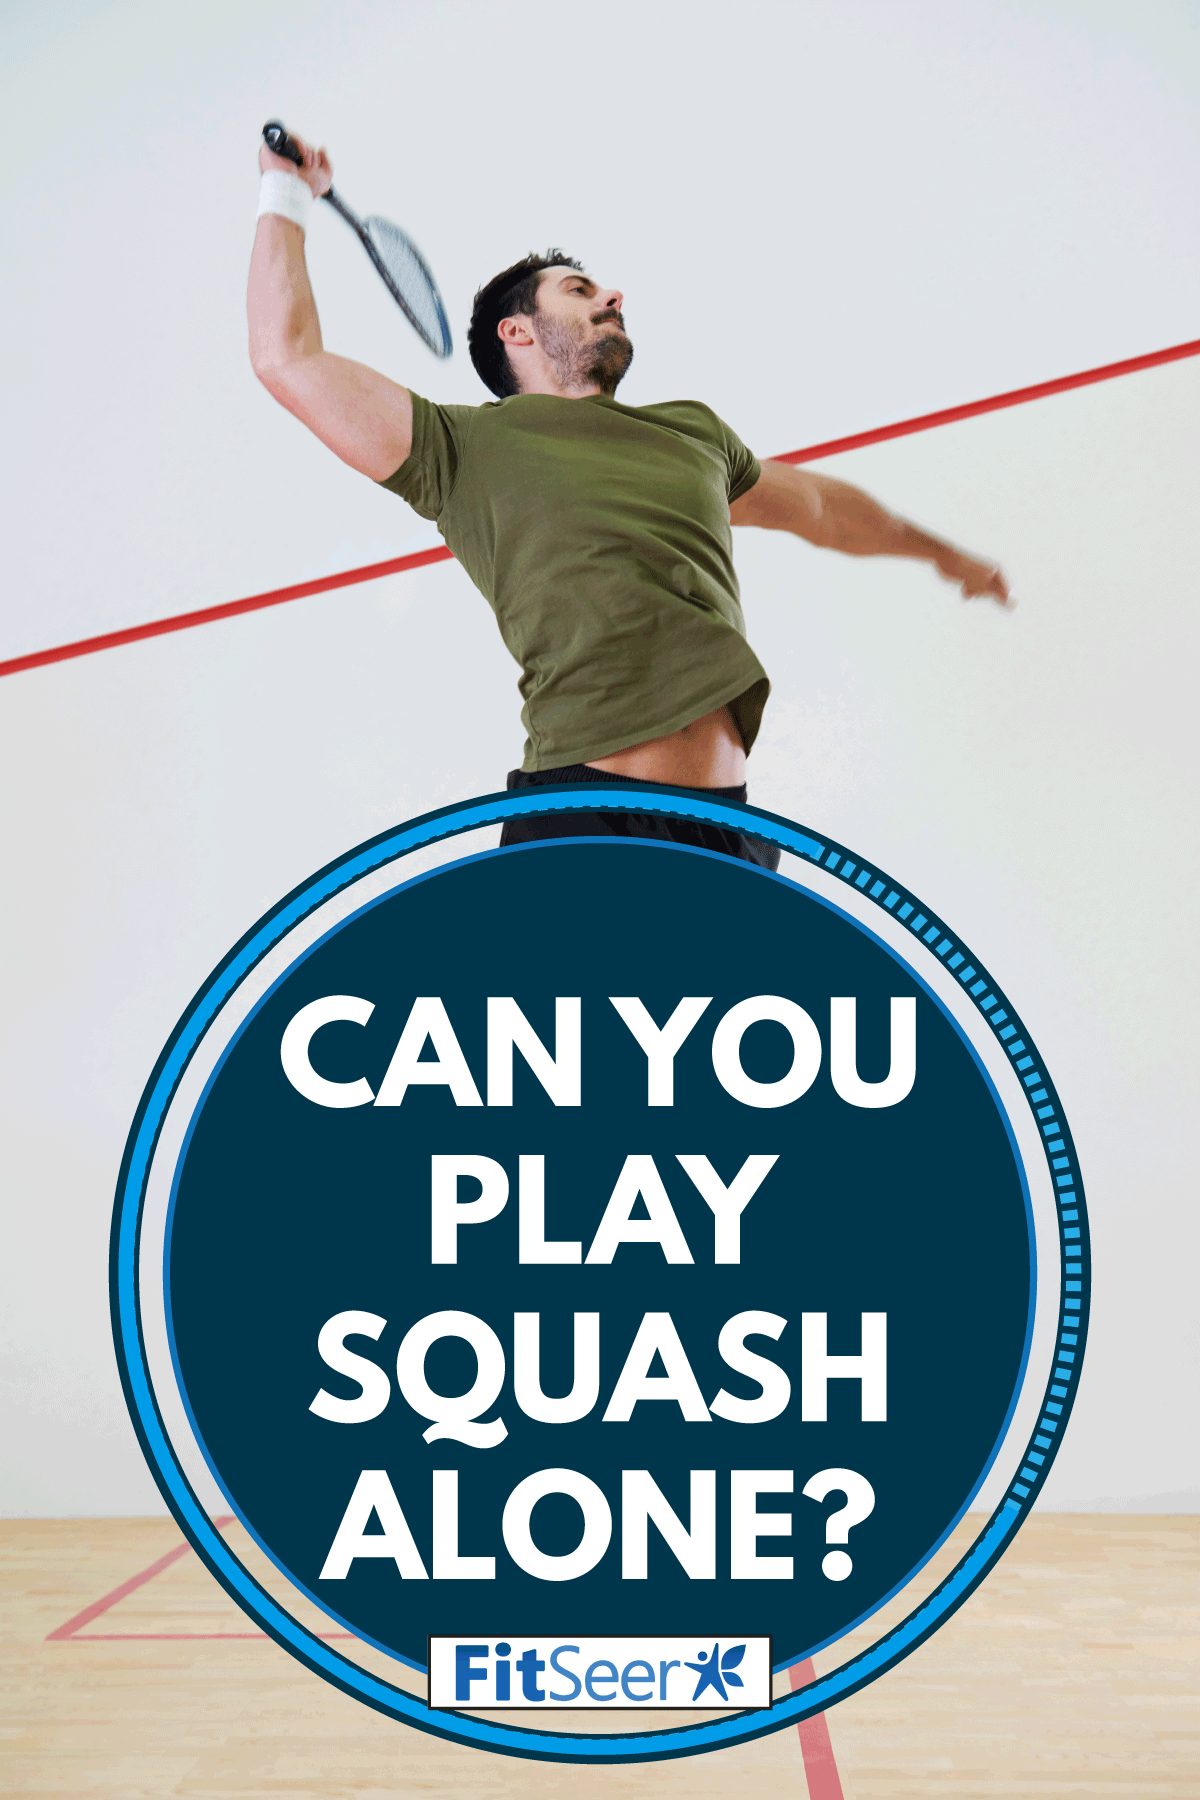 Male player jumping to hit a ball during squash match, Can You Play Squash Alone?